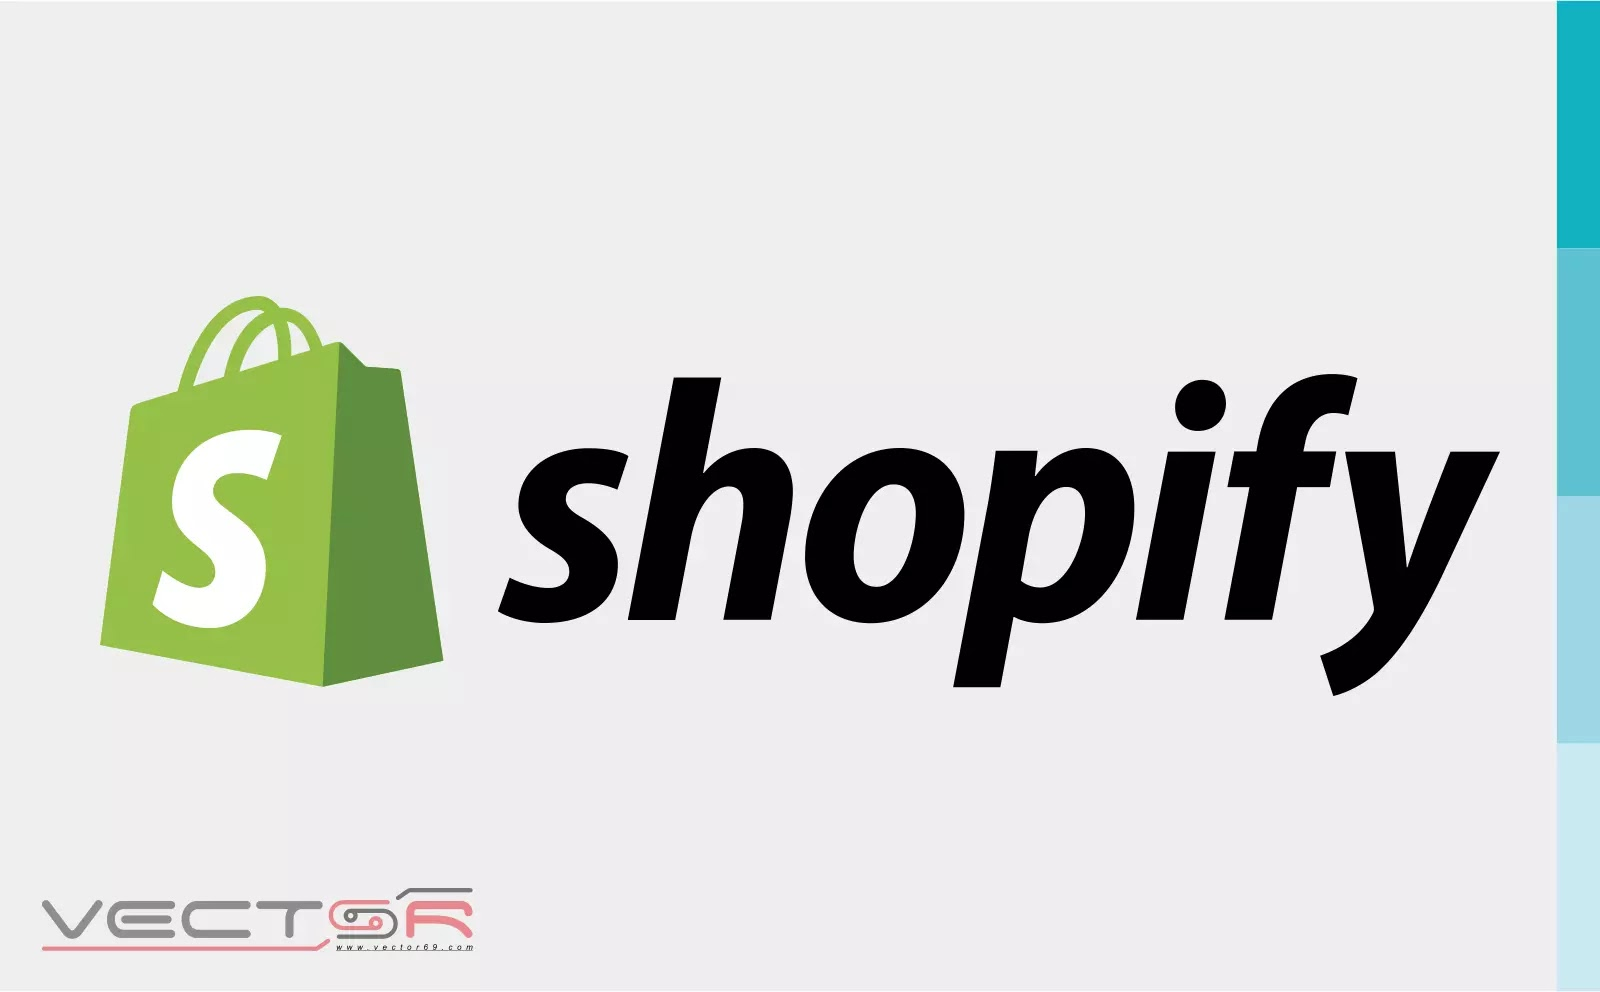 Shopify (2006) Logo - Download Vector File SVG (Scalable Vector Graphics)